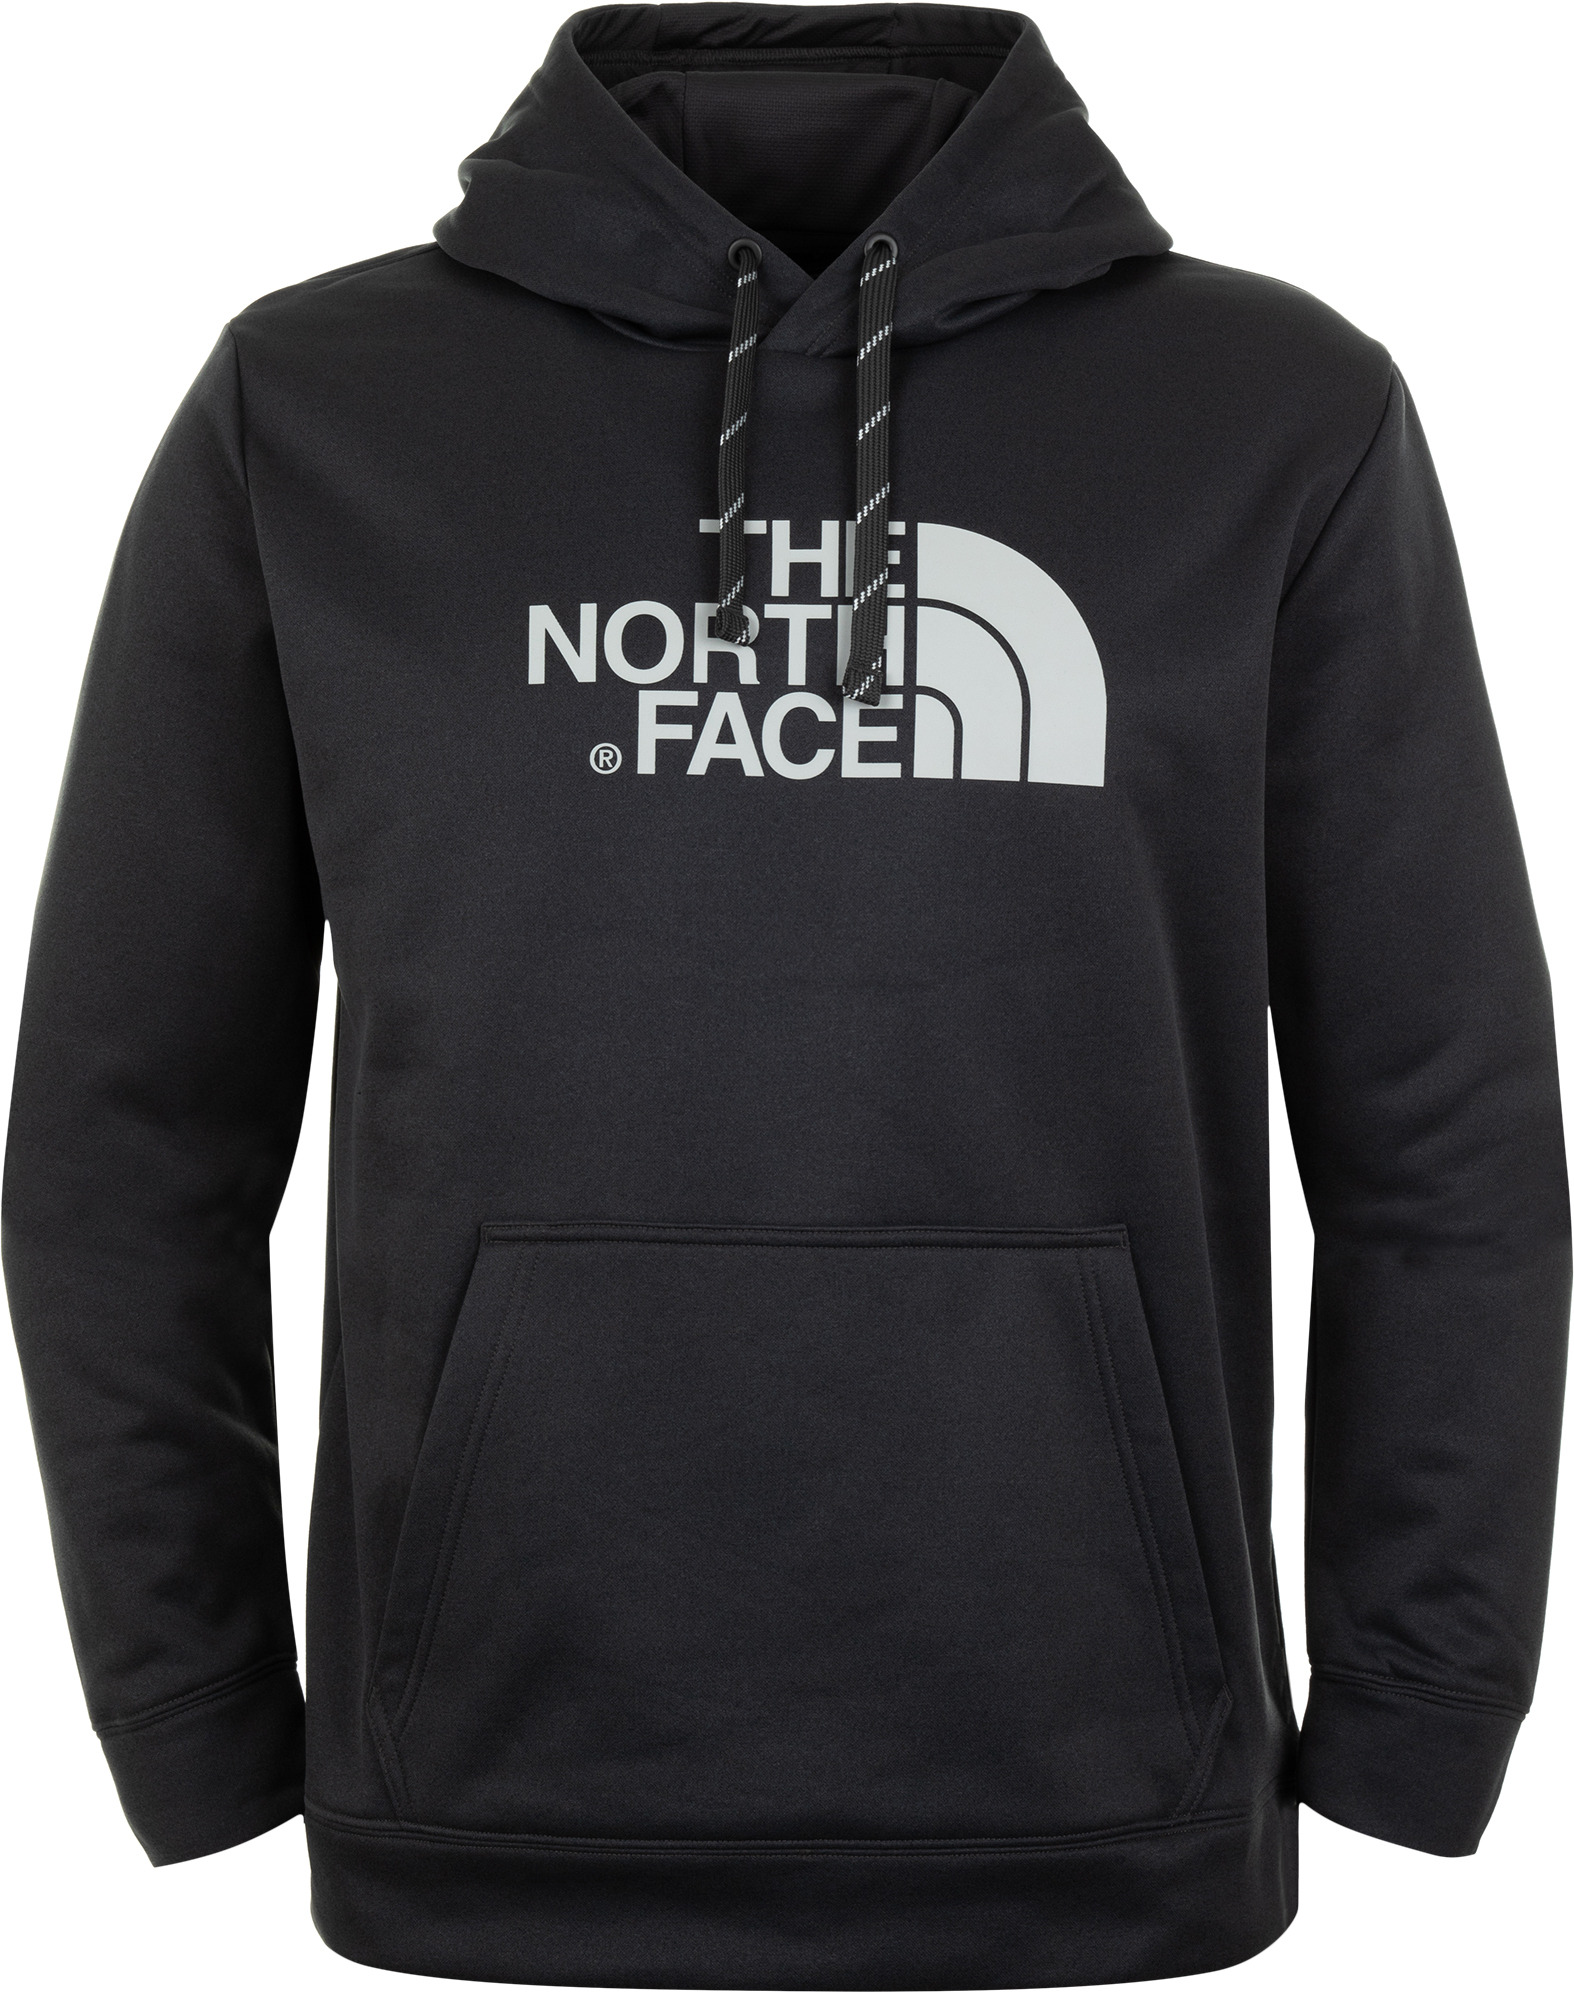 The North Face Худи мужская The North Face Surgent, размер 52 шапка the north face the north face surgent beanie черный lxl